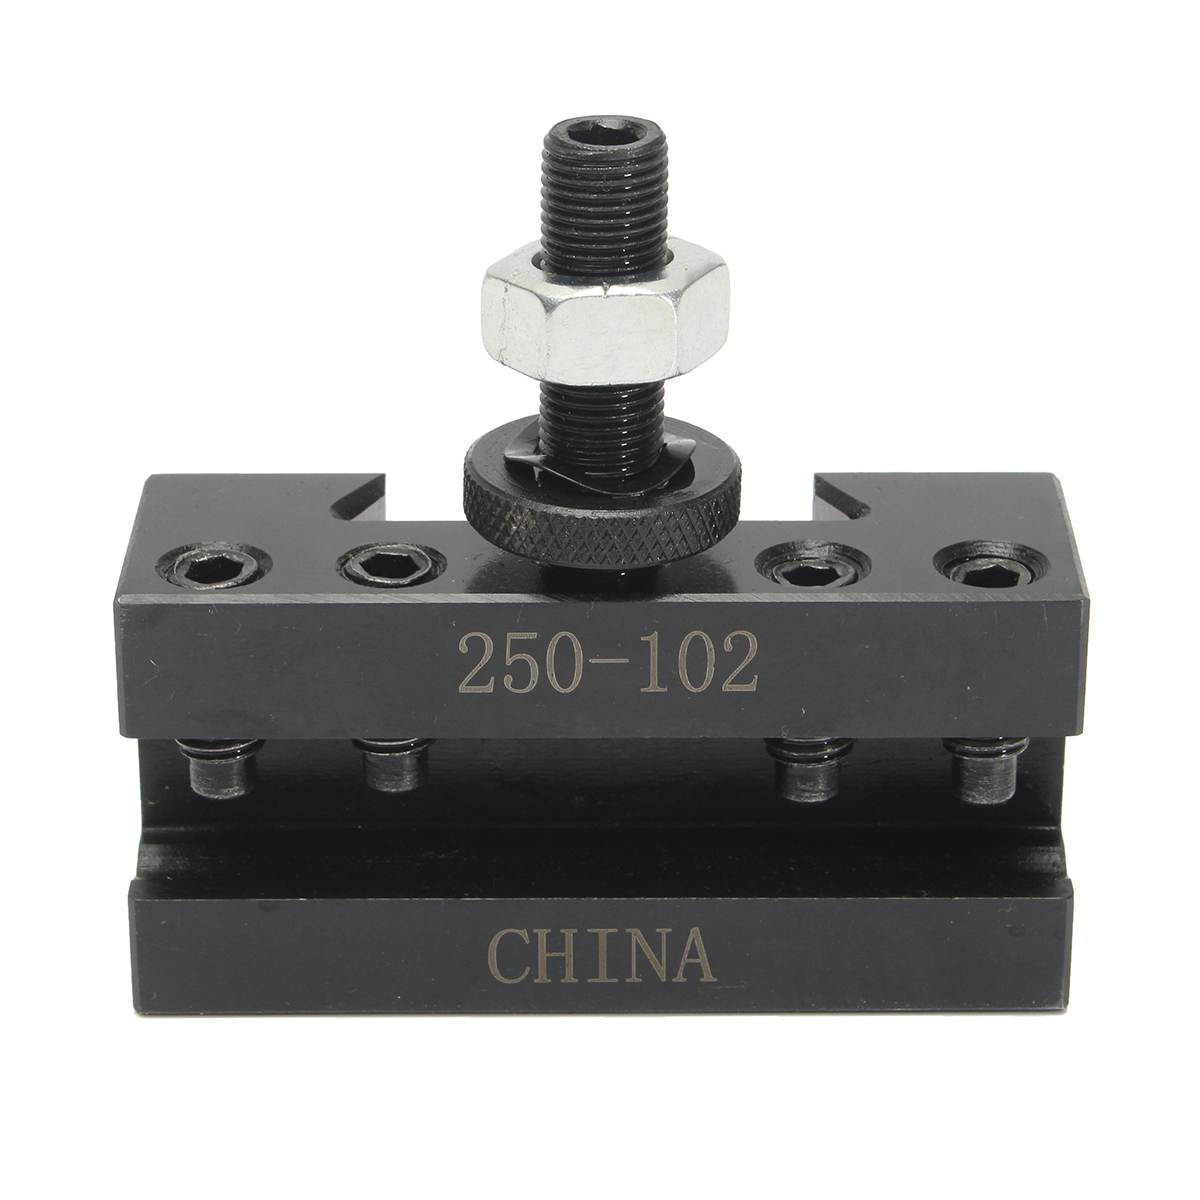 4PCS Quick Change Tool Post Turning /& Facing Holder for 250-101